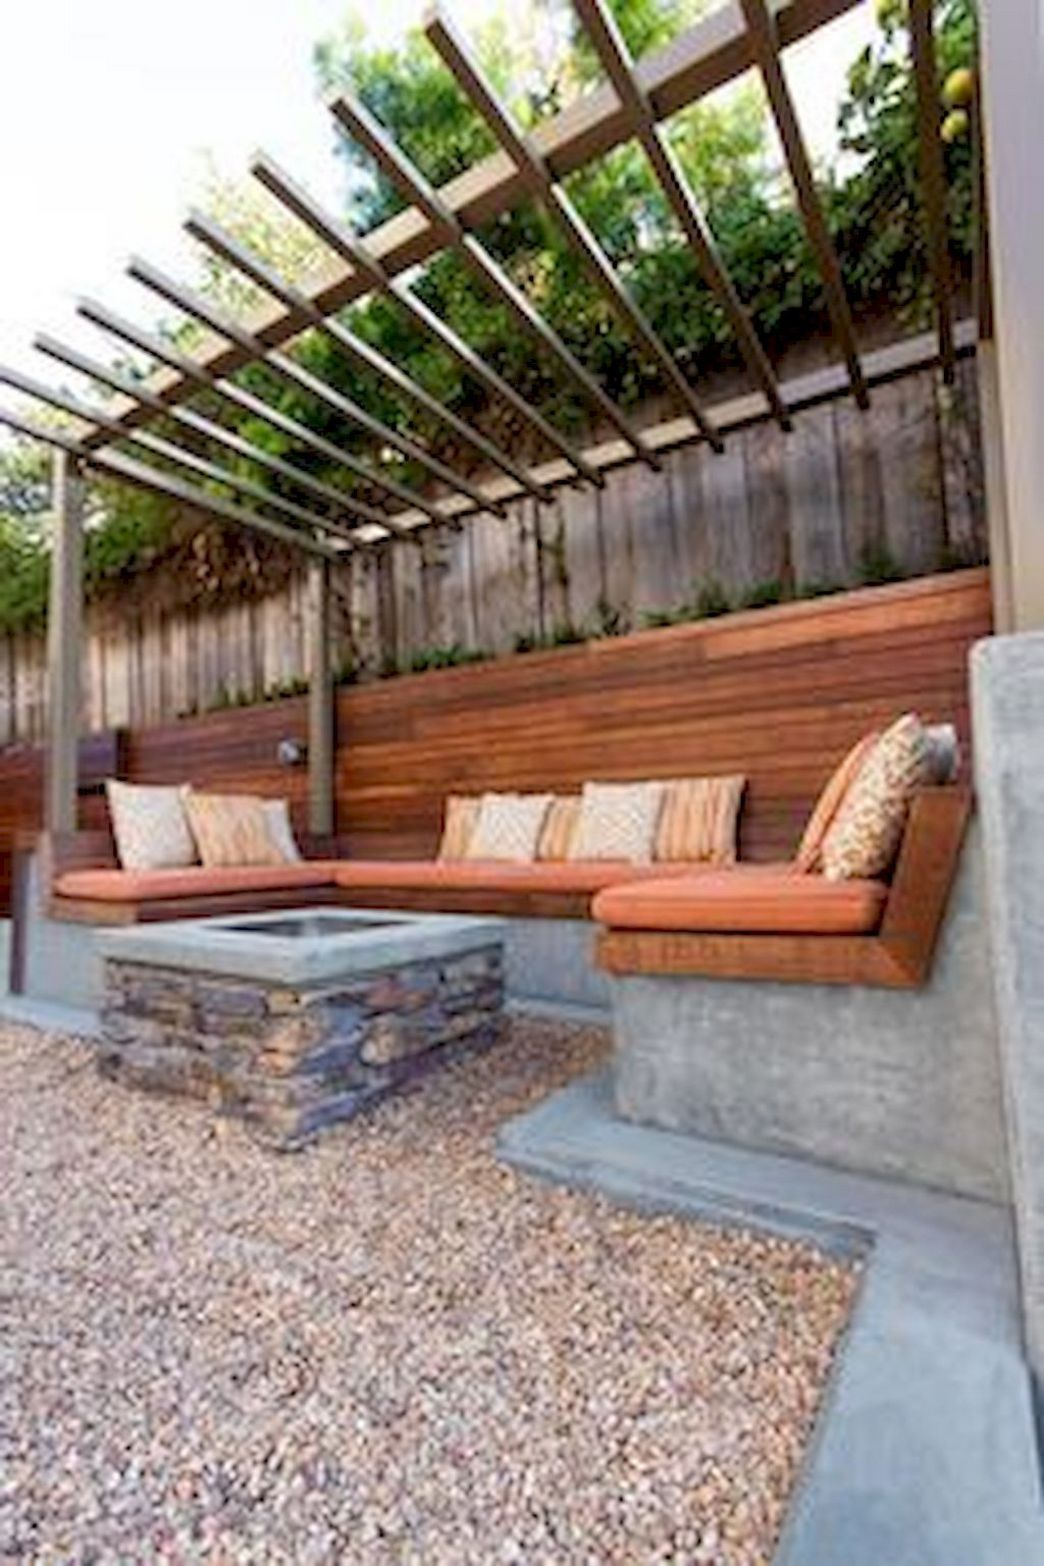 What You Should Do Is Concentrate On The Budget Apart From Comfort And Endurance The Budge Backyard Seating Area Modern Backyard Landscaping Backyard Seating